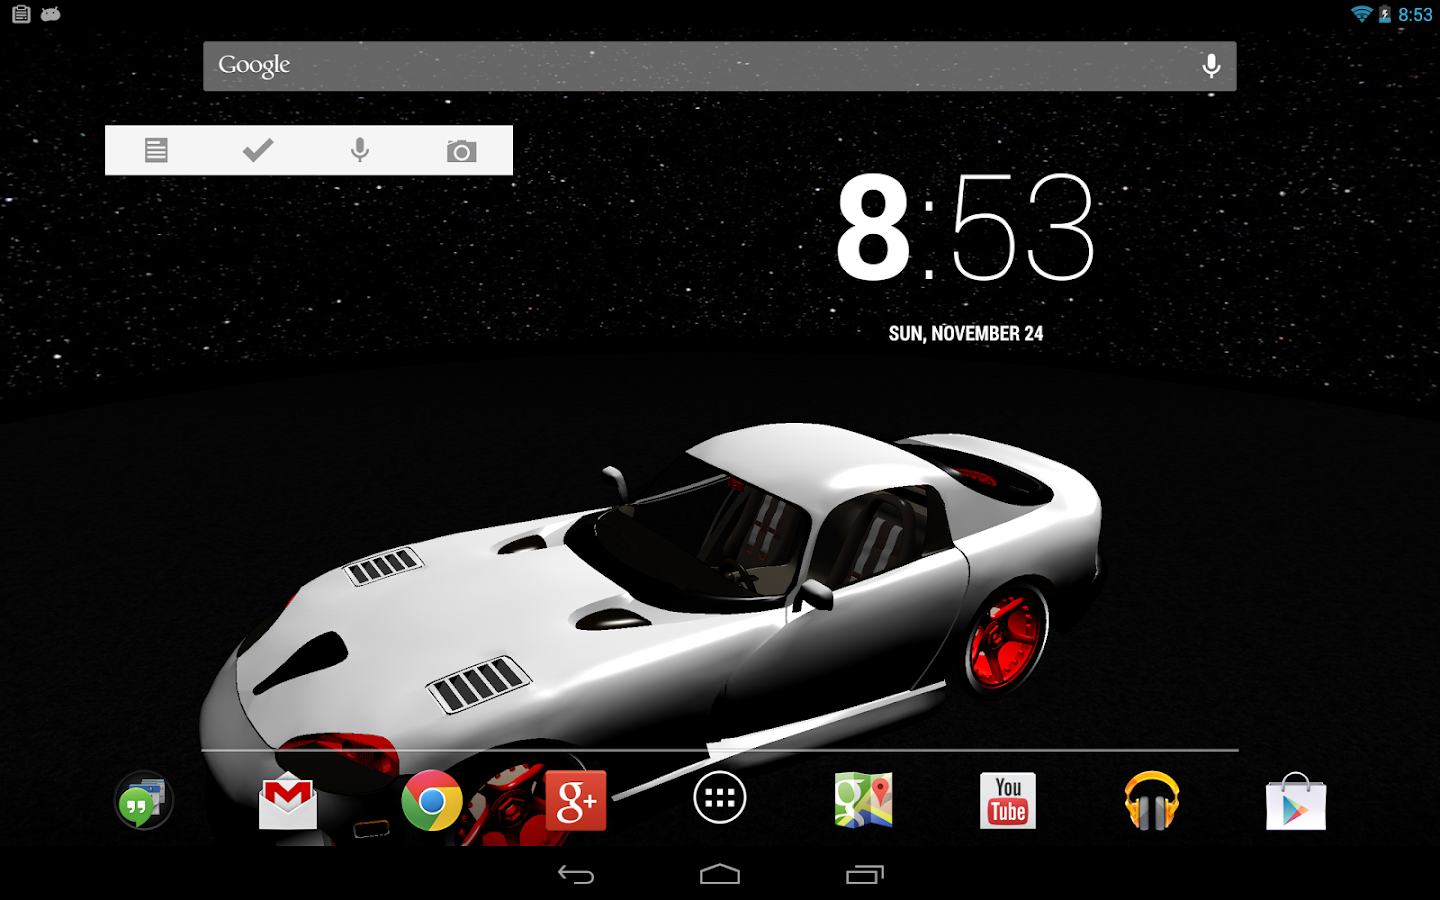 Wallpaper Mobil Sport 3d Android: Android Apps On Google Play